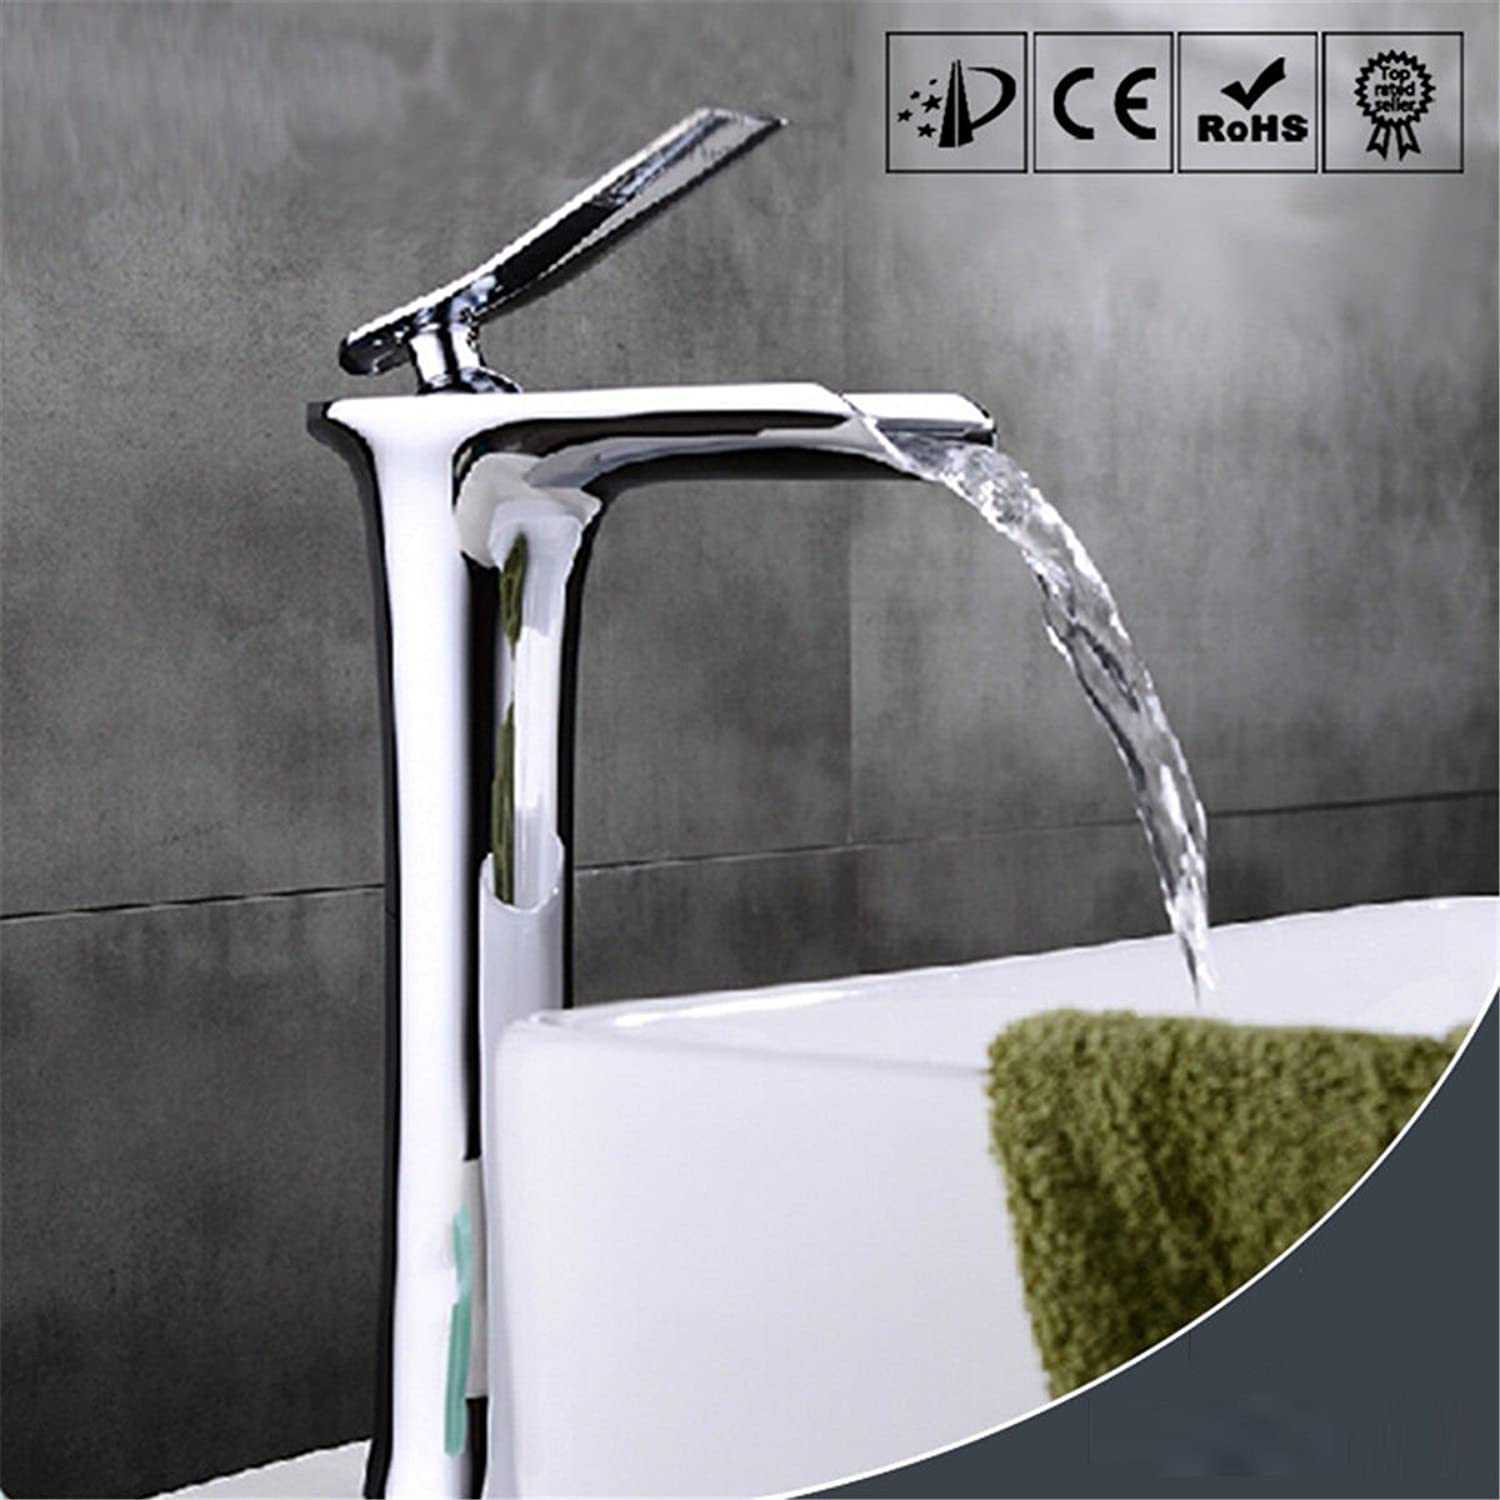 LHbox Basin Mixer Tap Bathroom Sink Faucet Modern chrome plated brass sit-in - plus high-Single Handle waterfall hot and cold mixing valve bathroom basin bathroom sink basin mixer